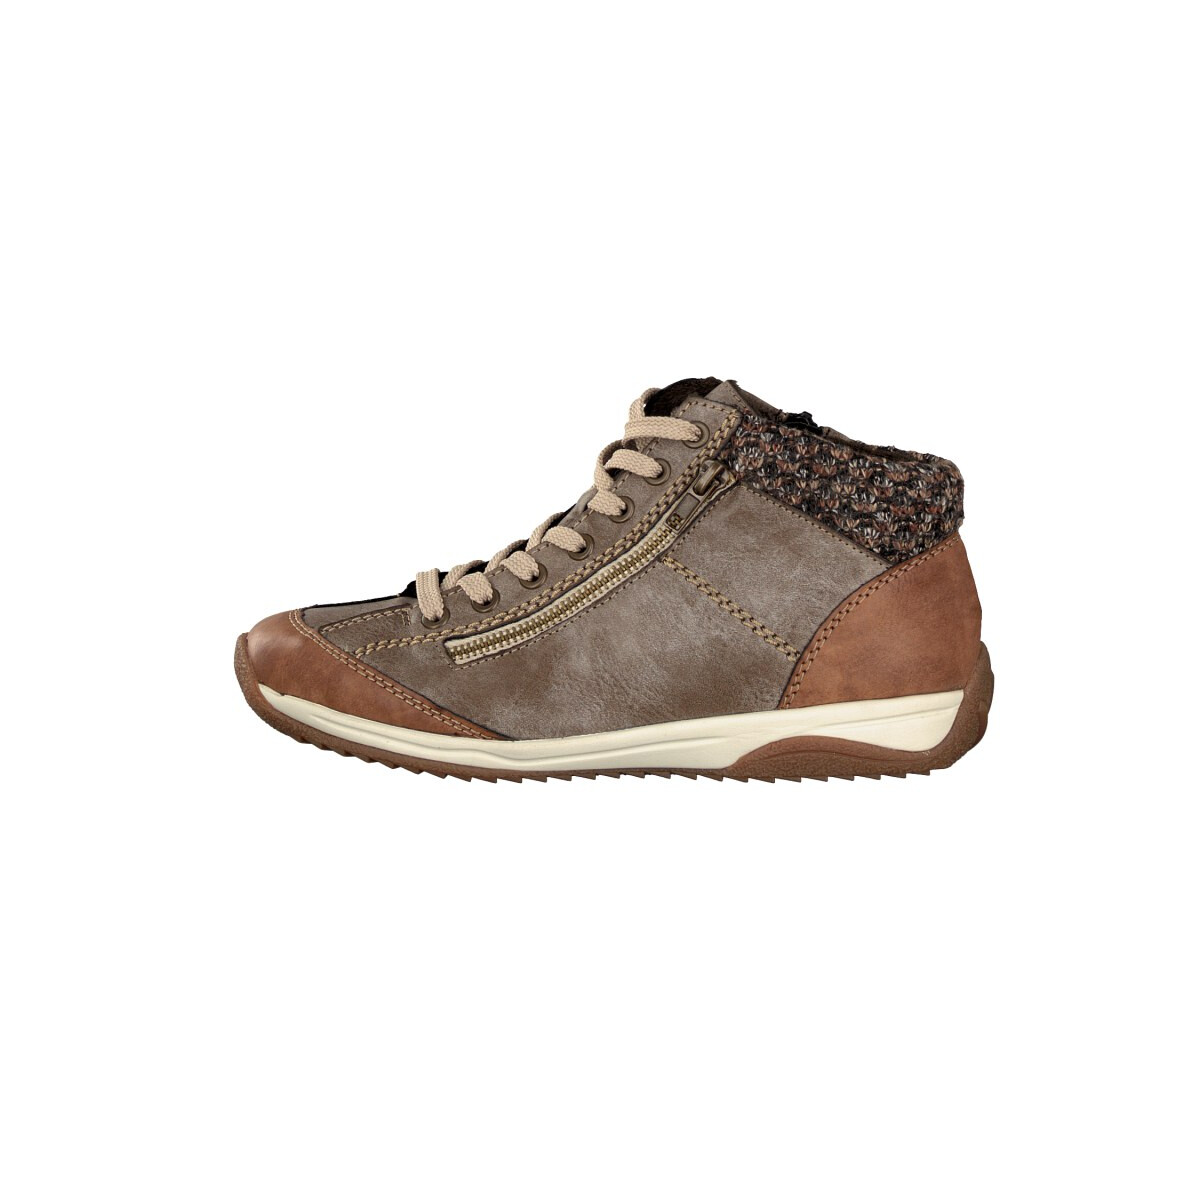 Ladies Rieker Casual Knitted Cuff Ankle Boots 'L5223'   eBay